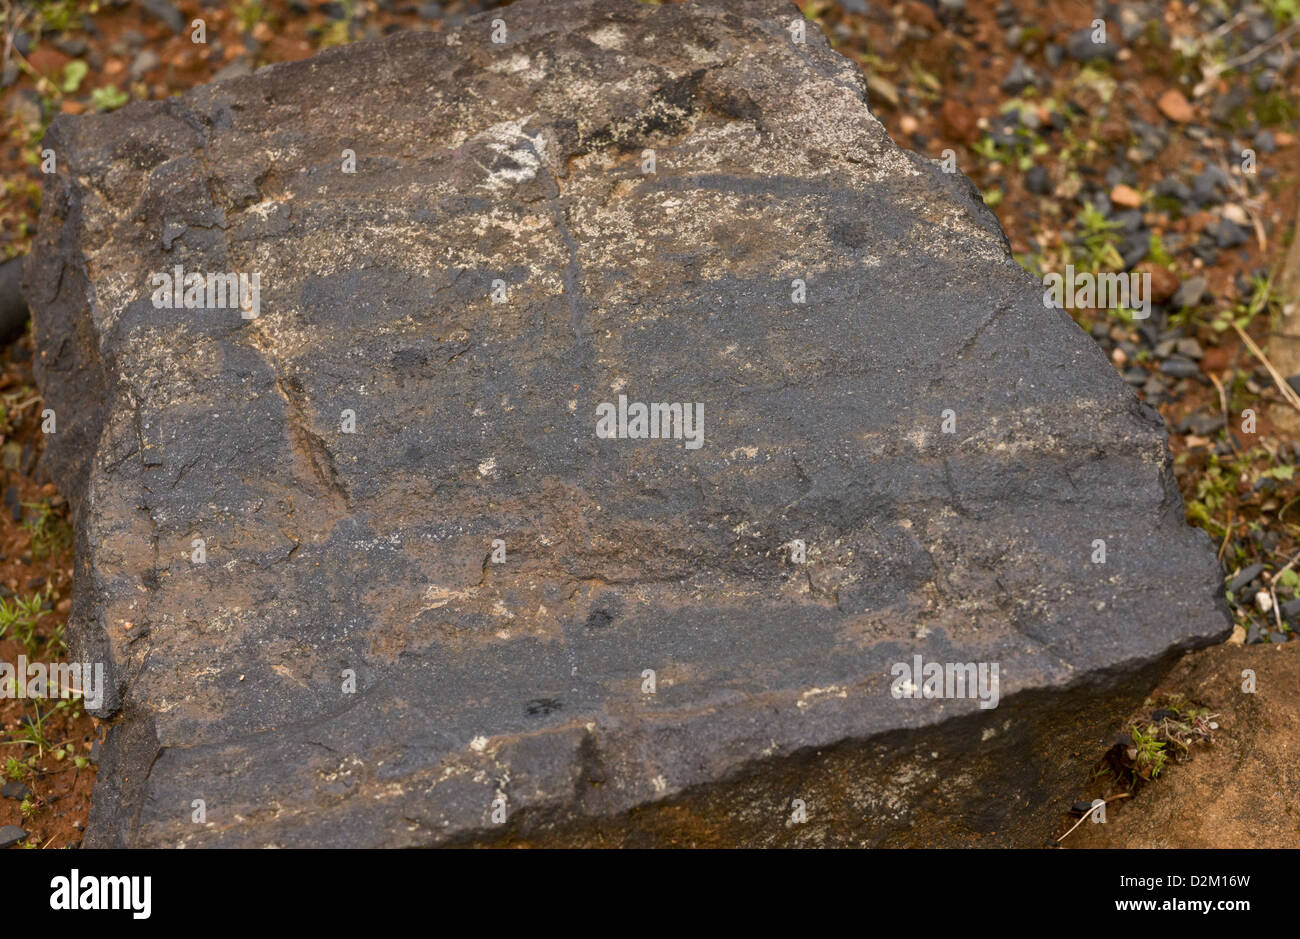 Chert, a fine-grained silica-rich sedimentary rock. South Africa - Stock Image